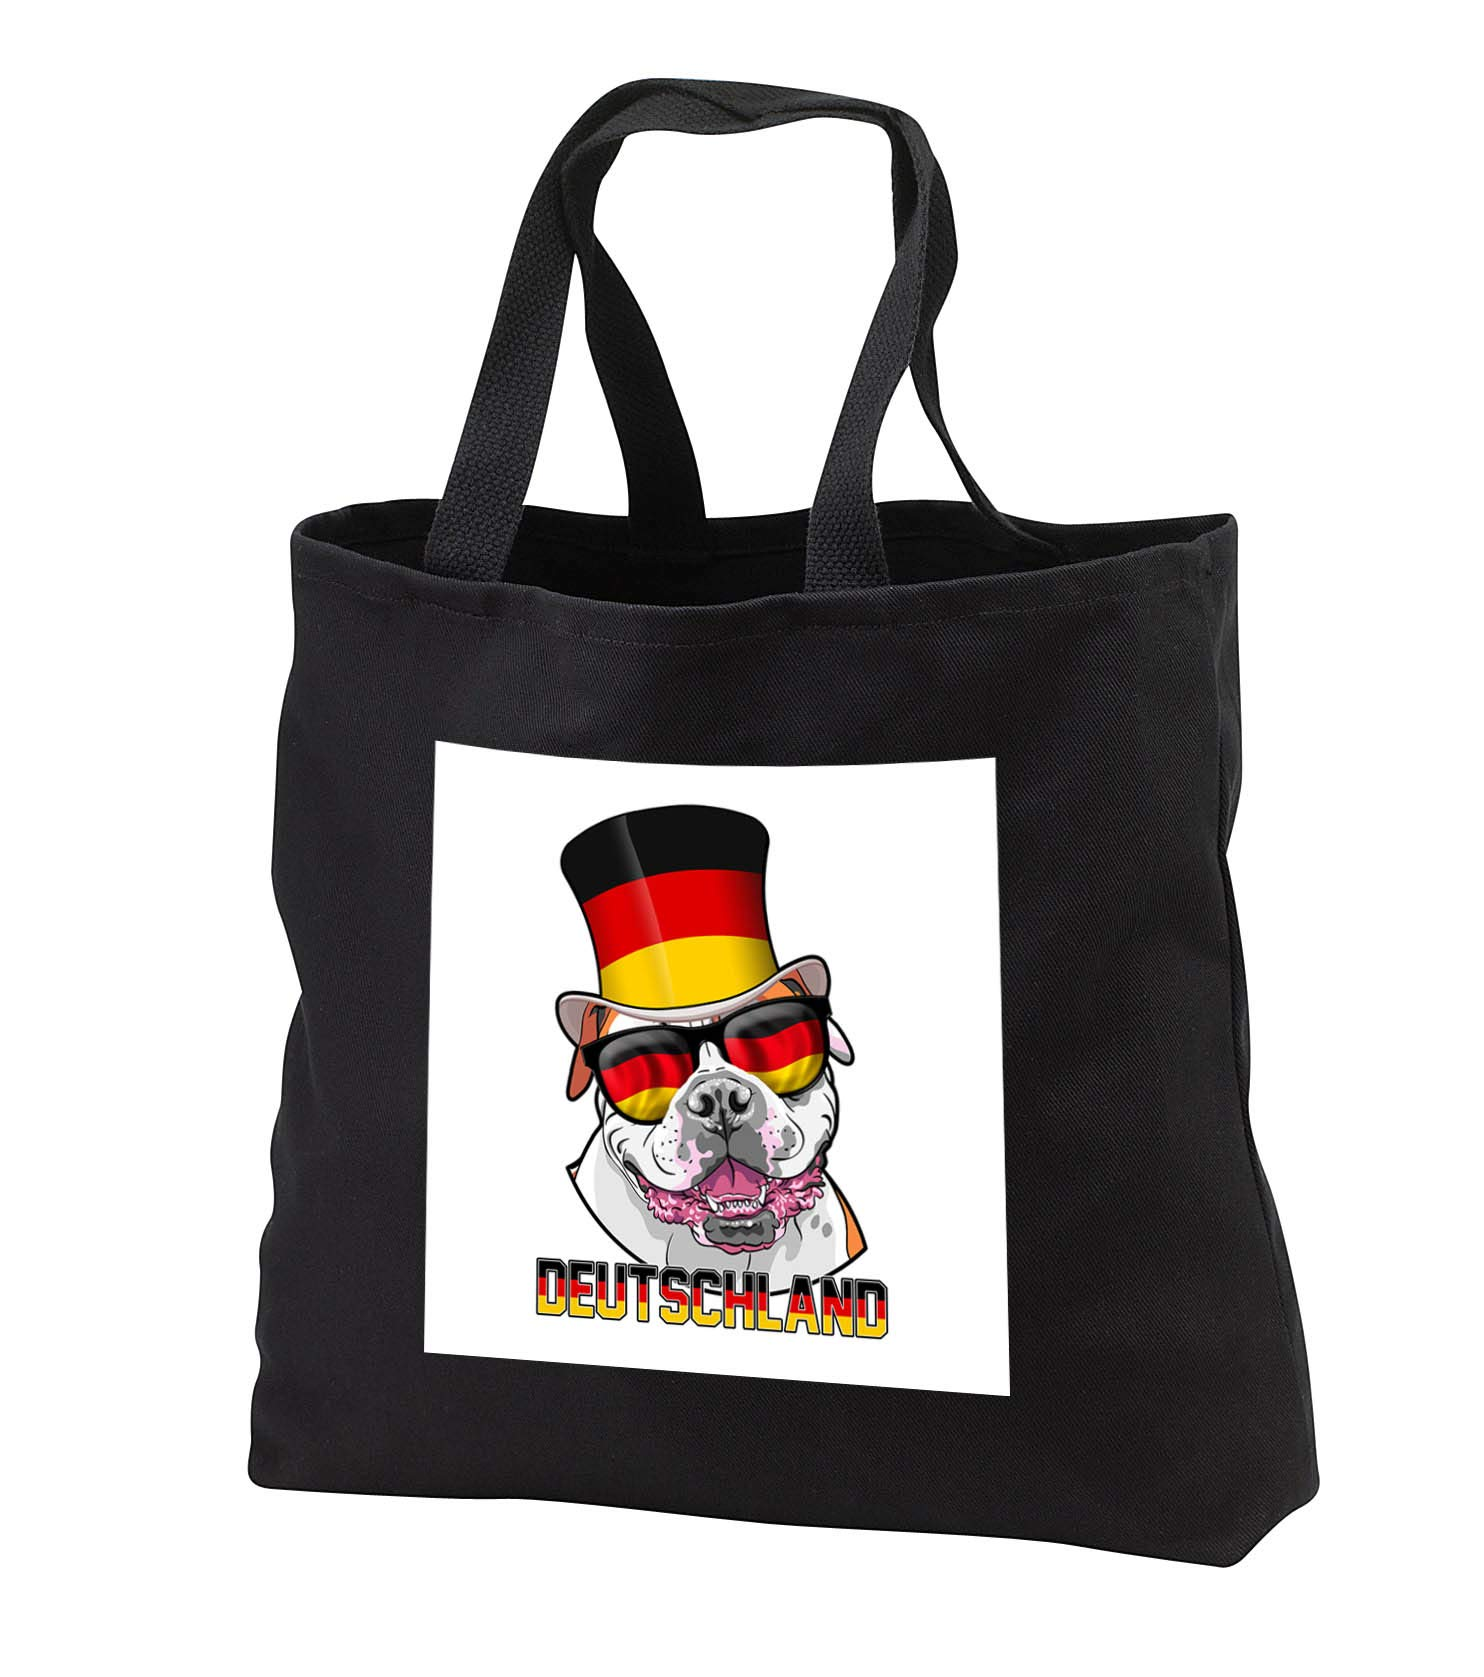 Carsten Reisinger - Illustrations - Germany American Bulldog with German Flag Top Hat and Sunglasses - Tote Bags - Black Tote Bag JUMBO 20w x 15h x 5d (tb_293422_3)